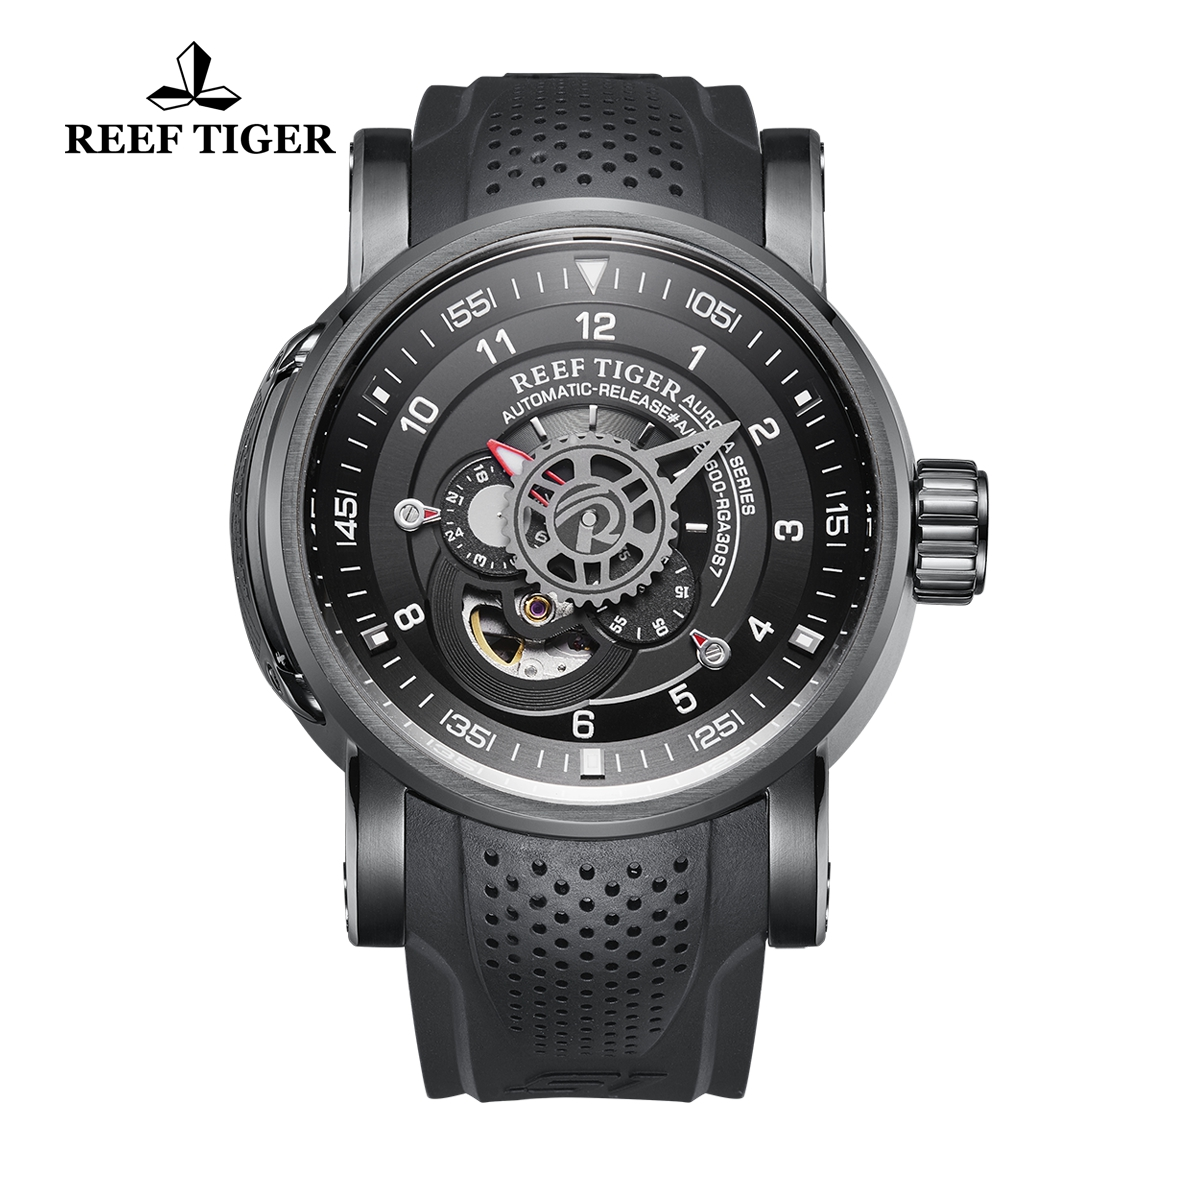 Reef Tiger Aurora Machinist Fashion PVD Rubber Strap Black Dial Automatic Watch RGA30S7-BBB